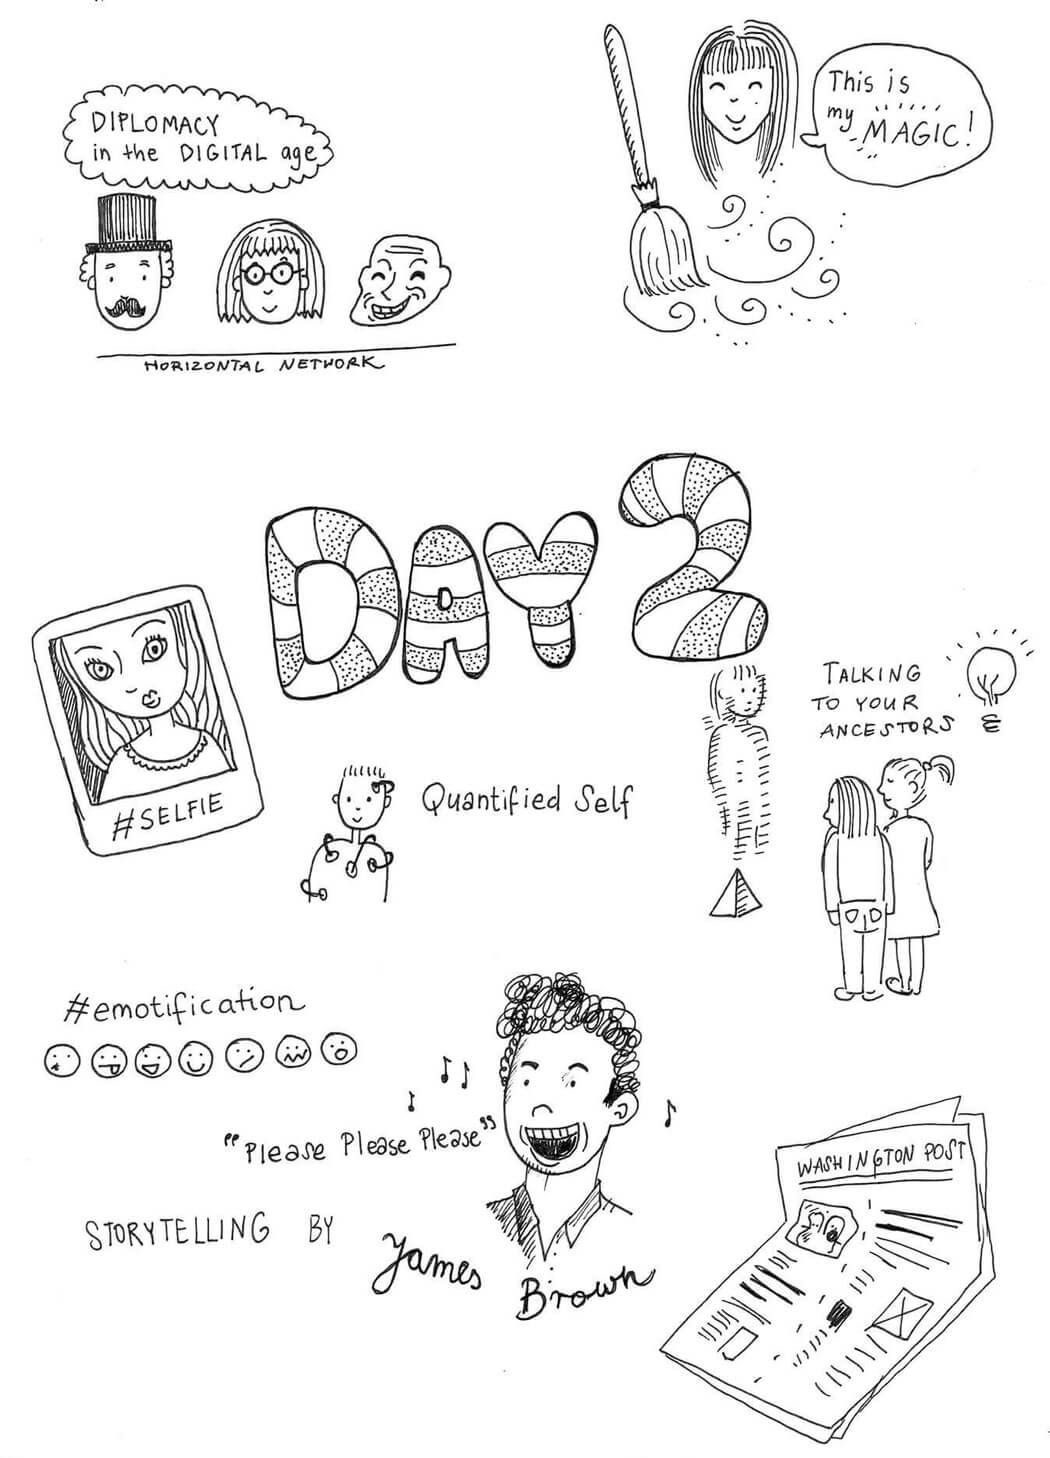 Illustrated notes from Web Summit Day 2